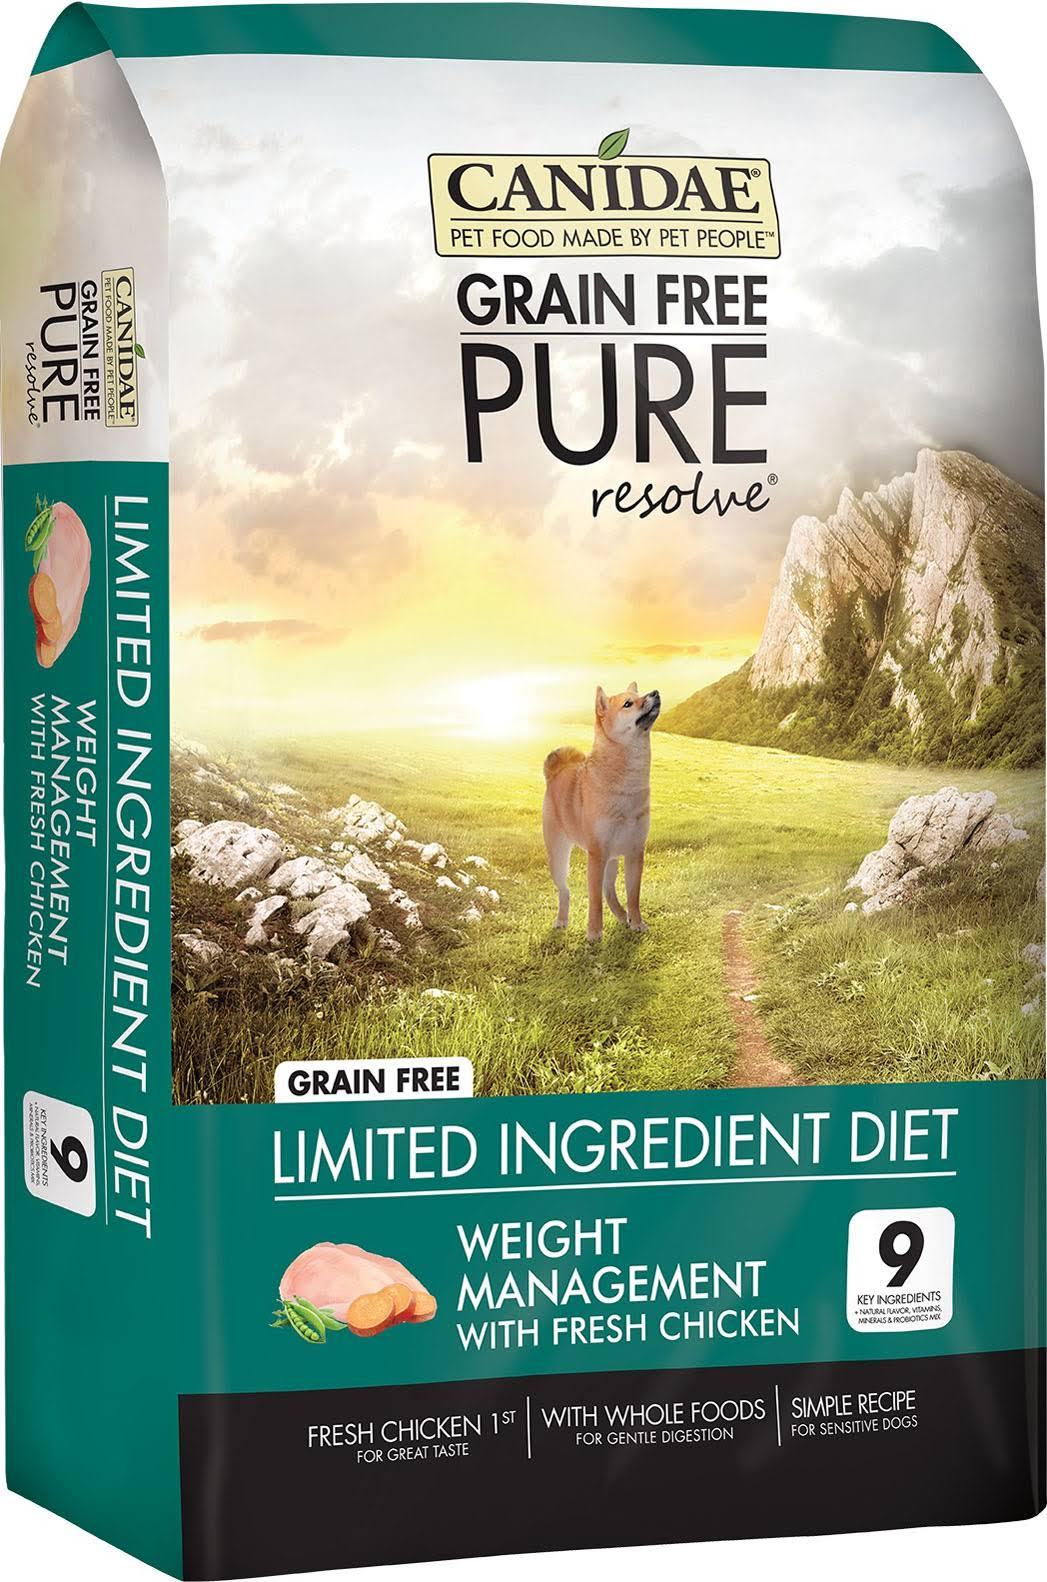 Canidae Grain Pure Resolve Weight Management Natural Dog Food - 4lbs